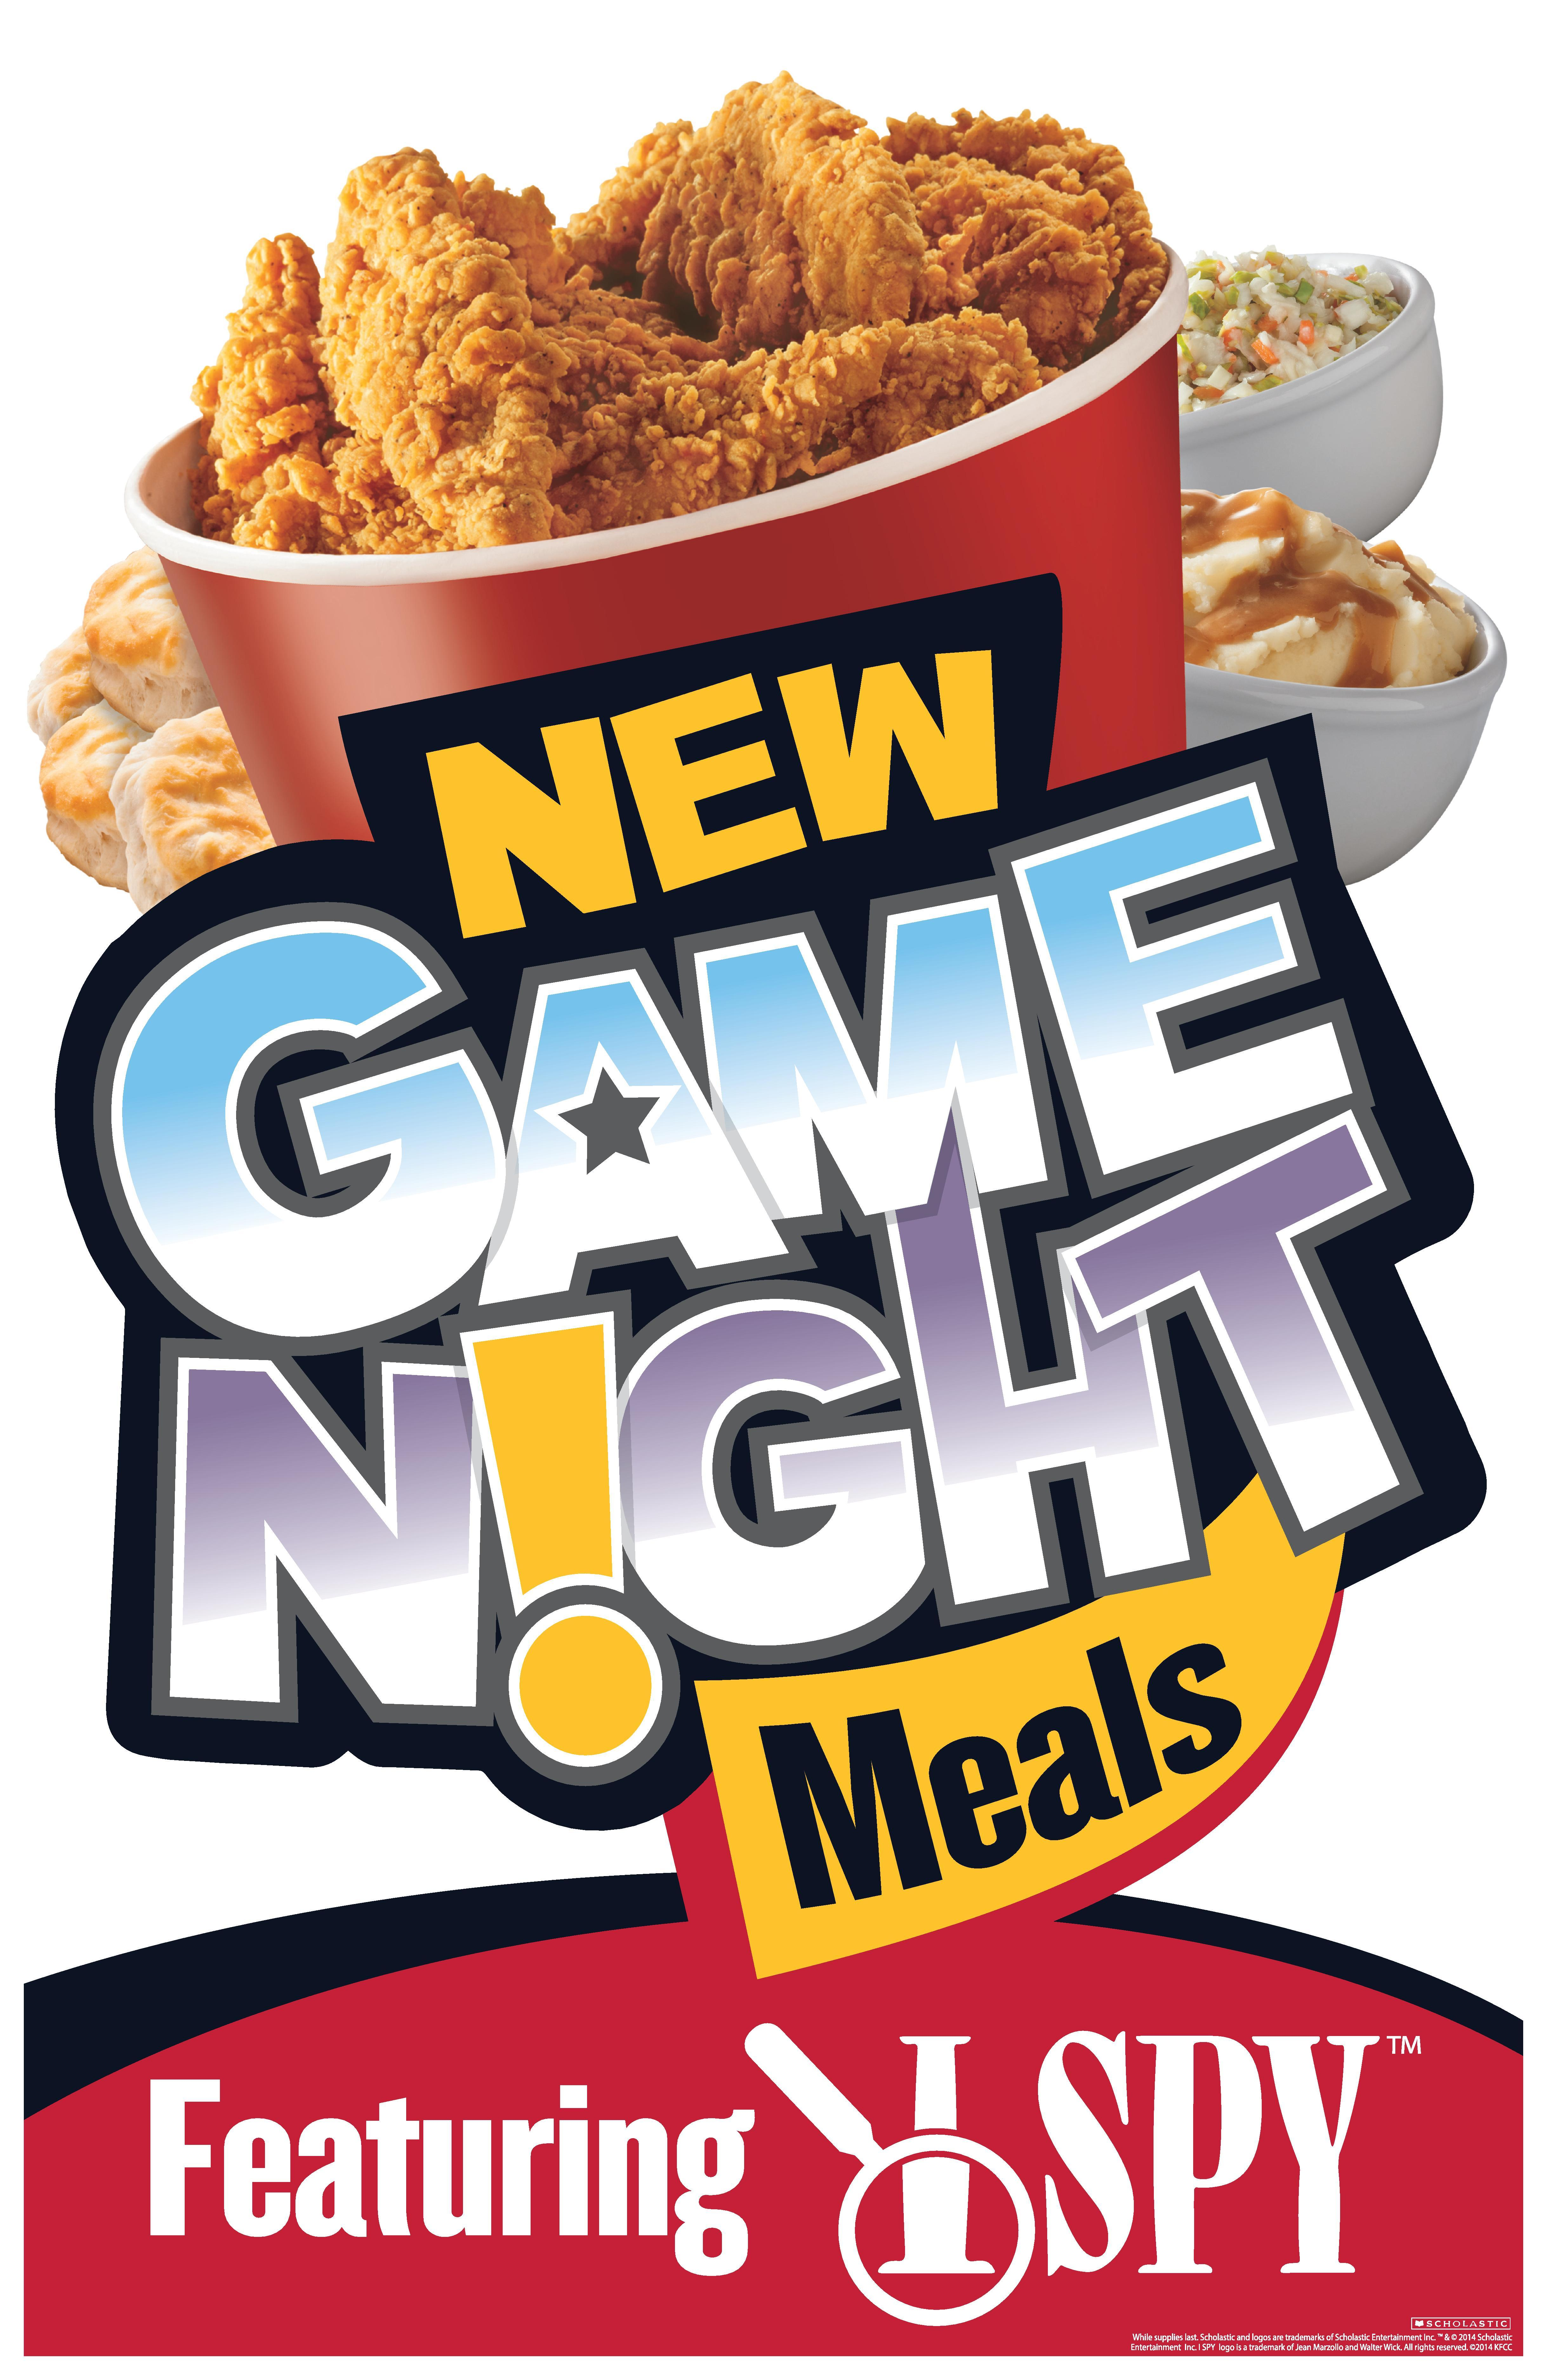 kfc brings families together over dinner with game night bucket